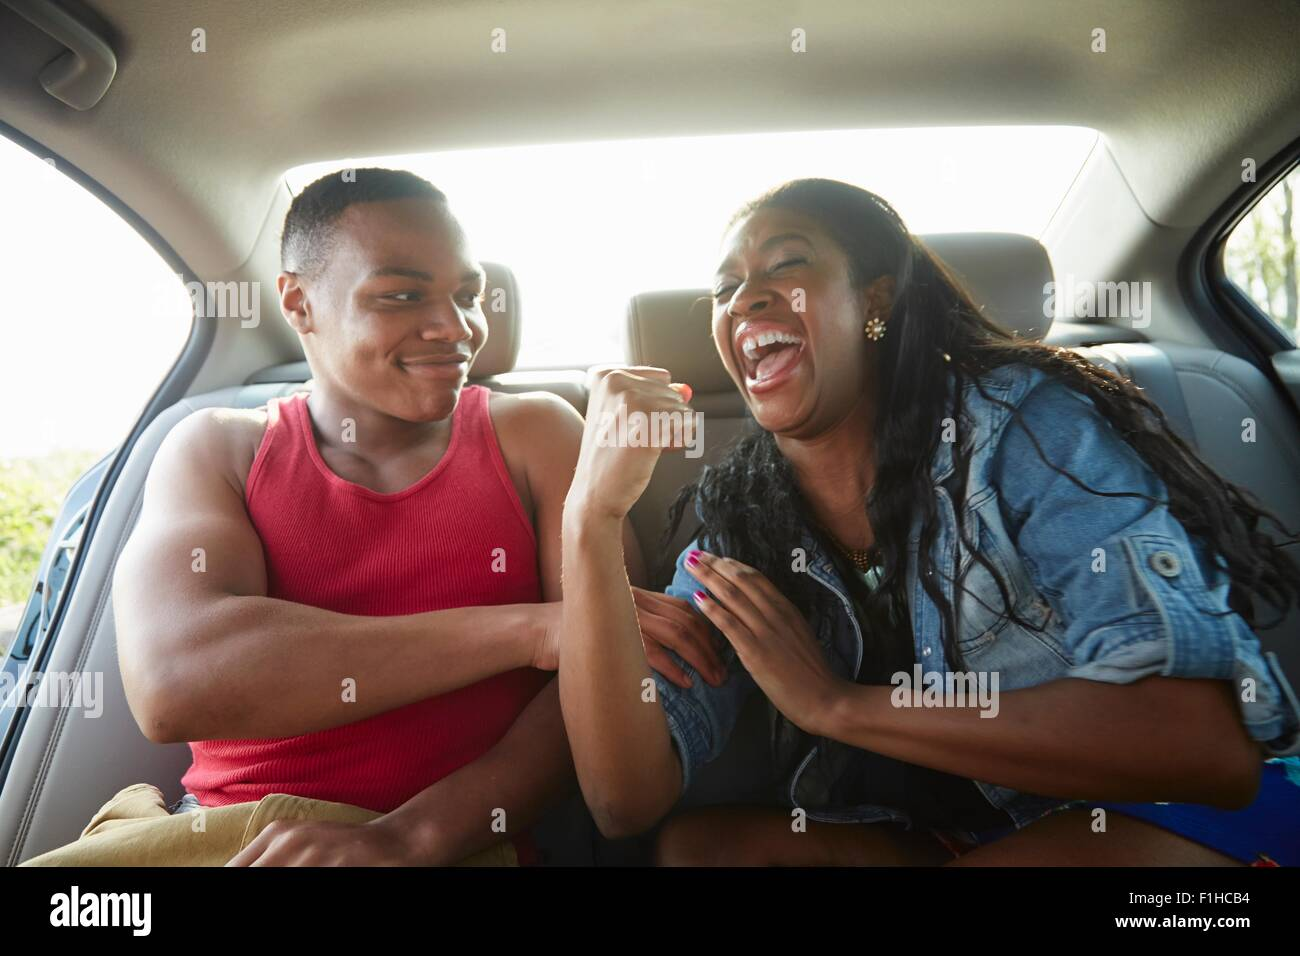 Young couple in car laughing, woman flexing muscles - Stock Image